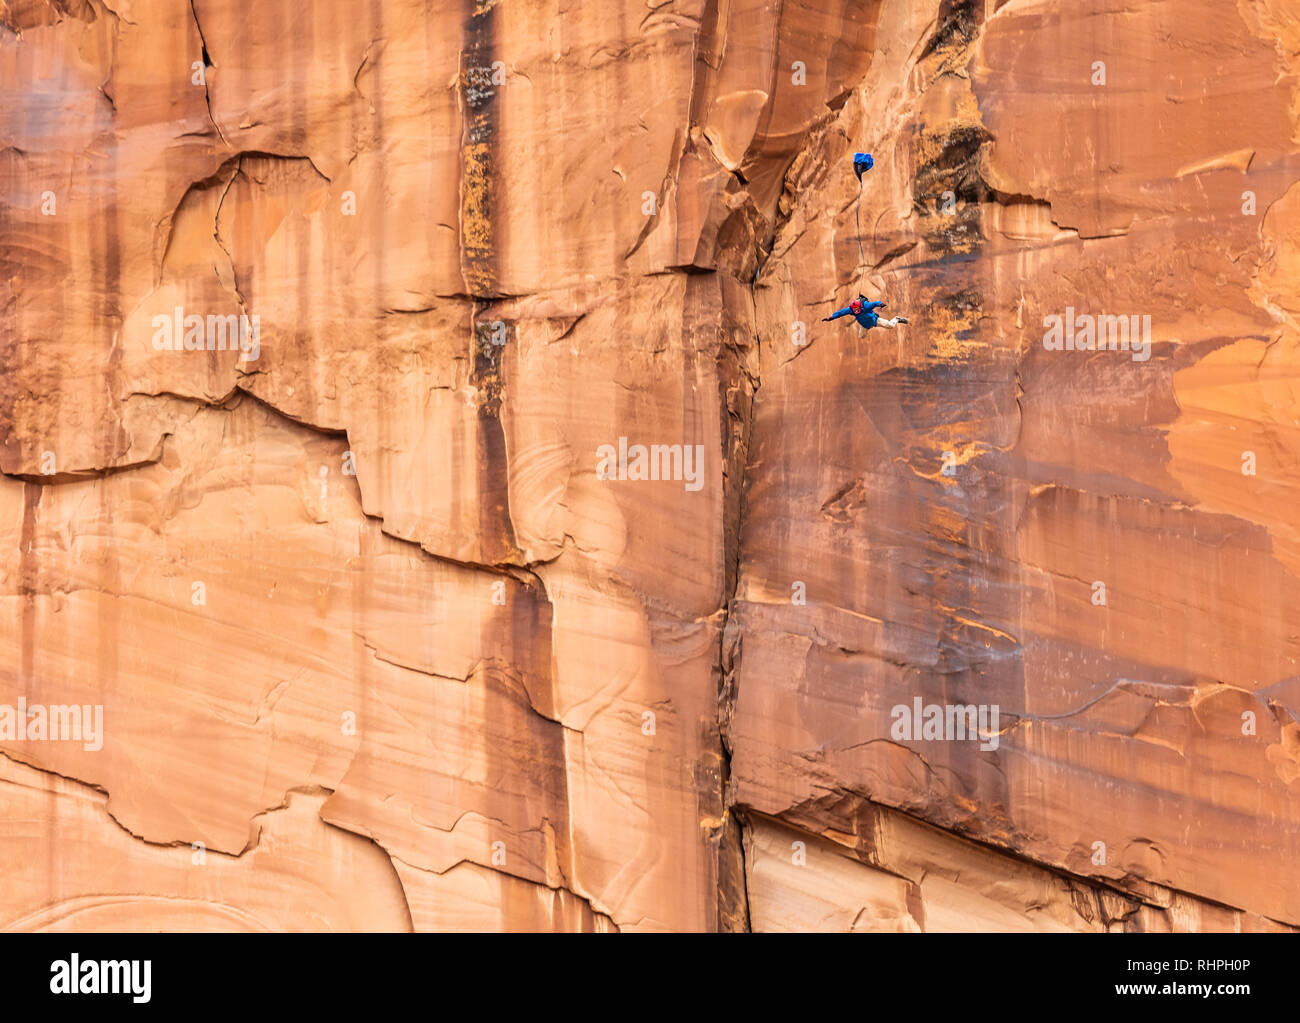 Rollin Gieker BASE jumps from an exit point called Tombstone near Moab Utah - Stock Image